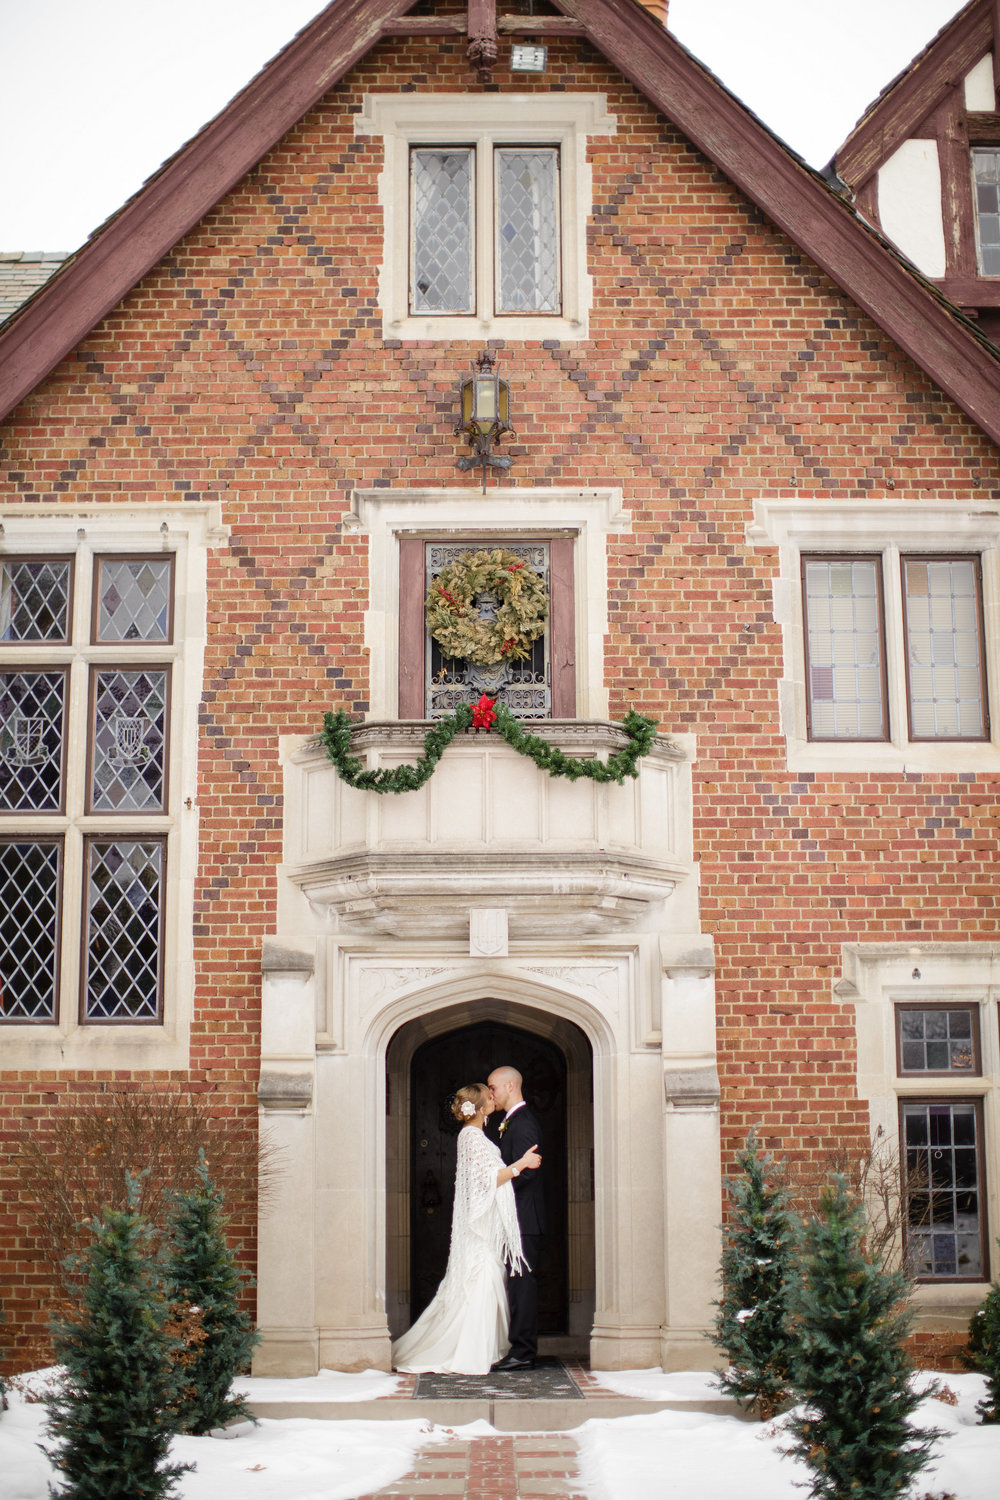 rollins-mansion-desmoines-iowa-winter-wedding-strapless-wedding-dress